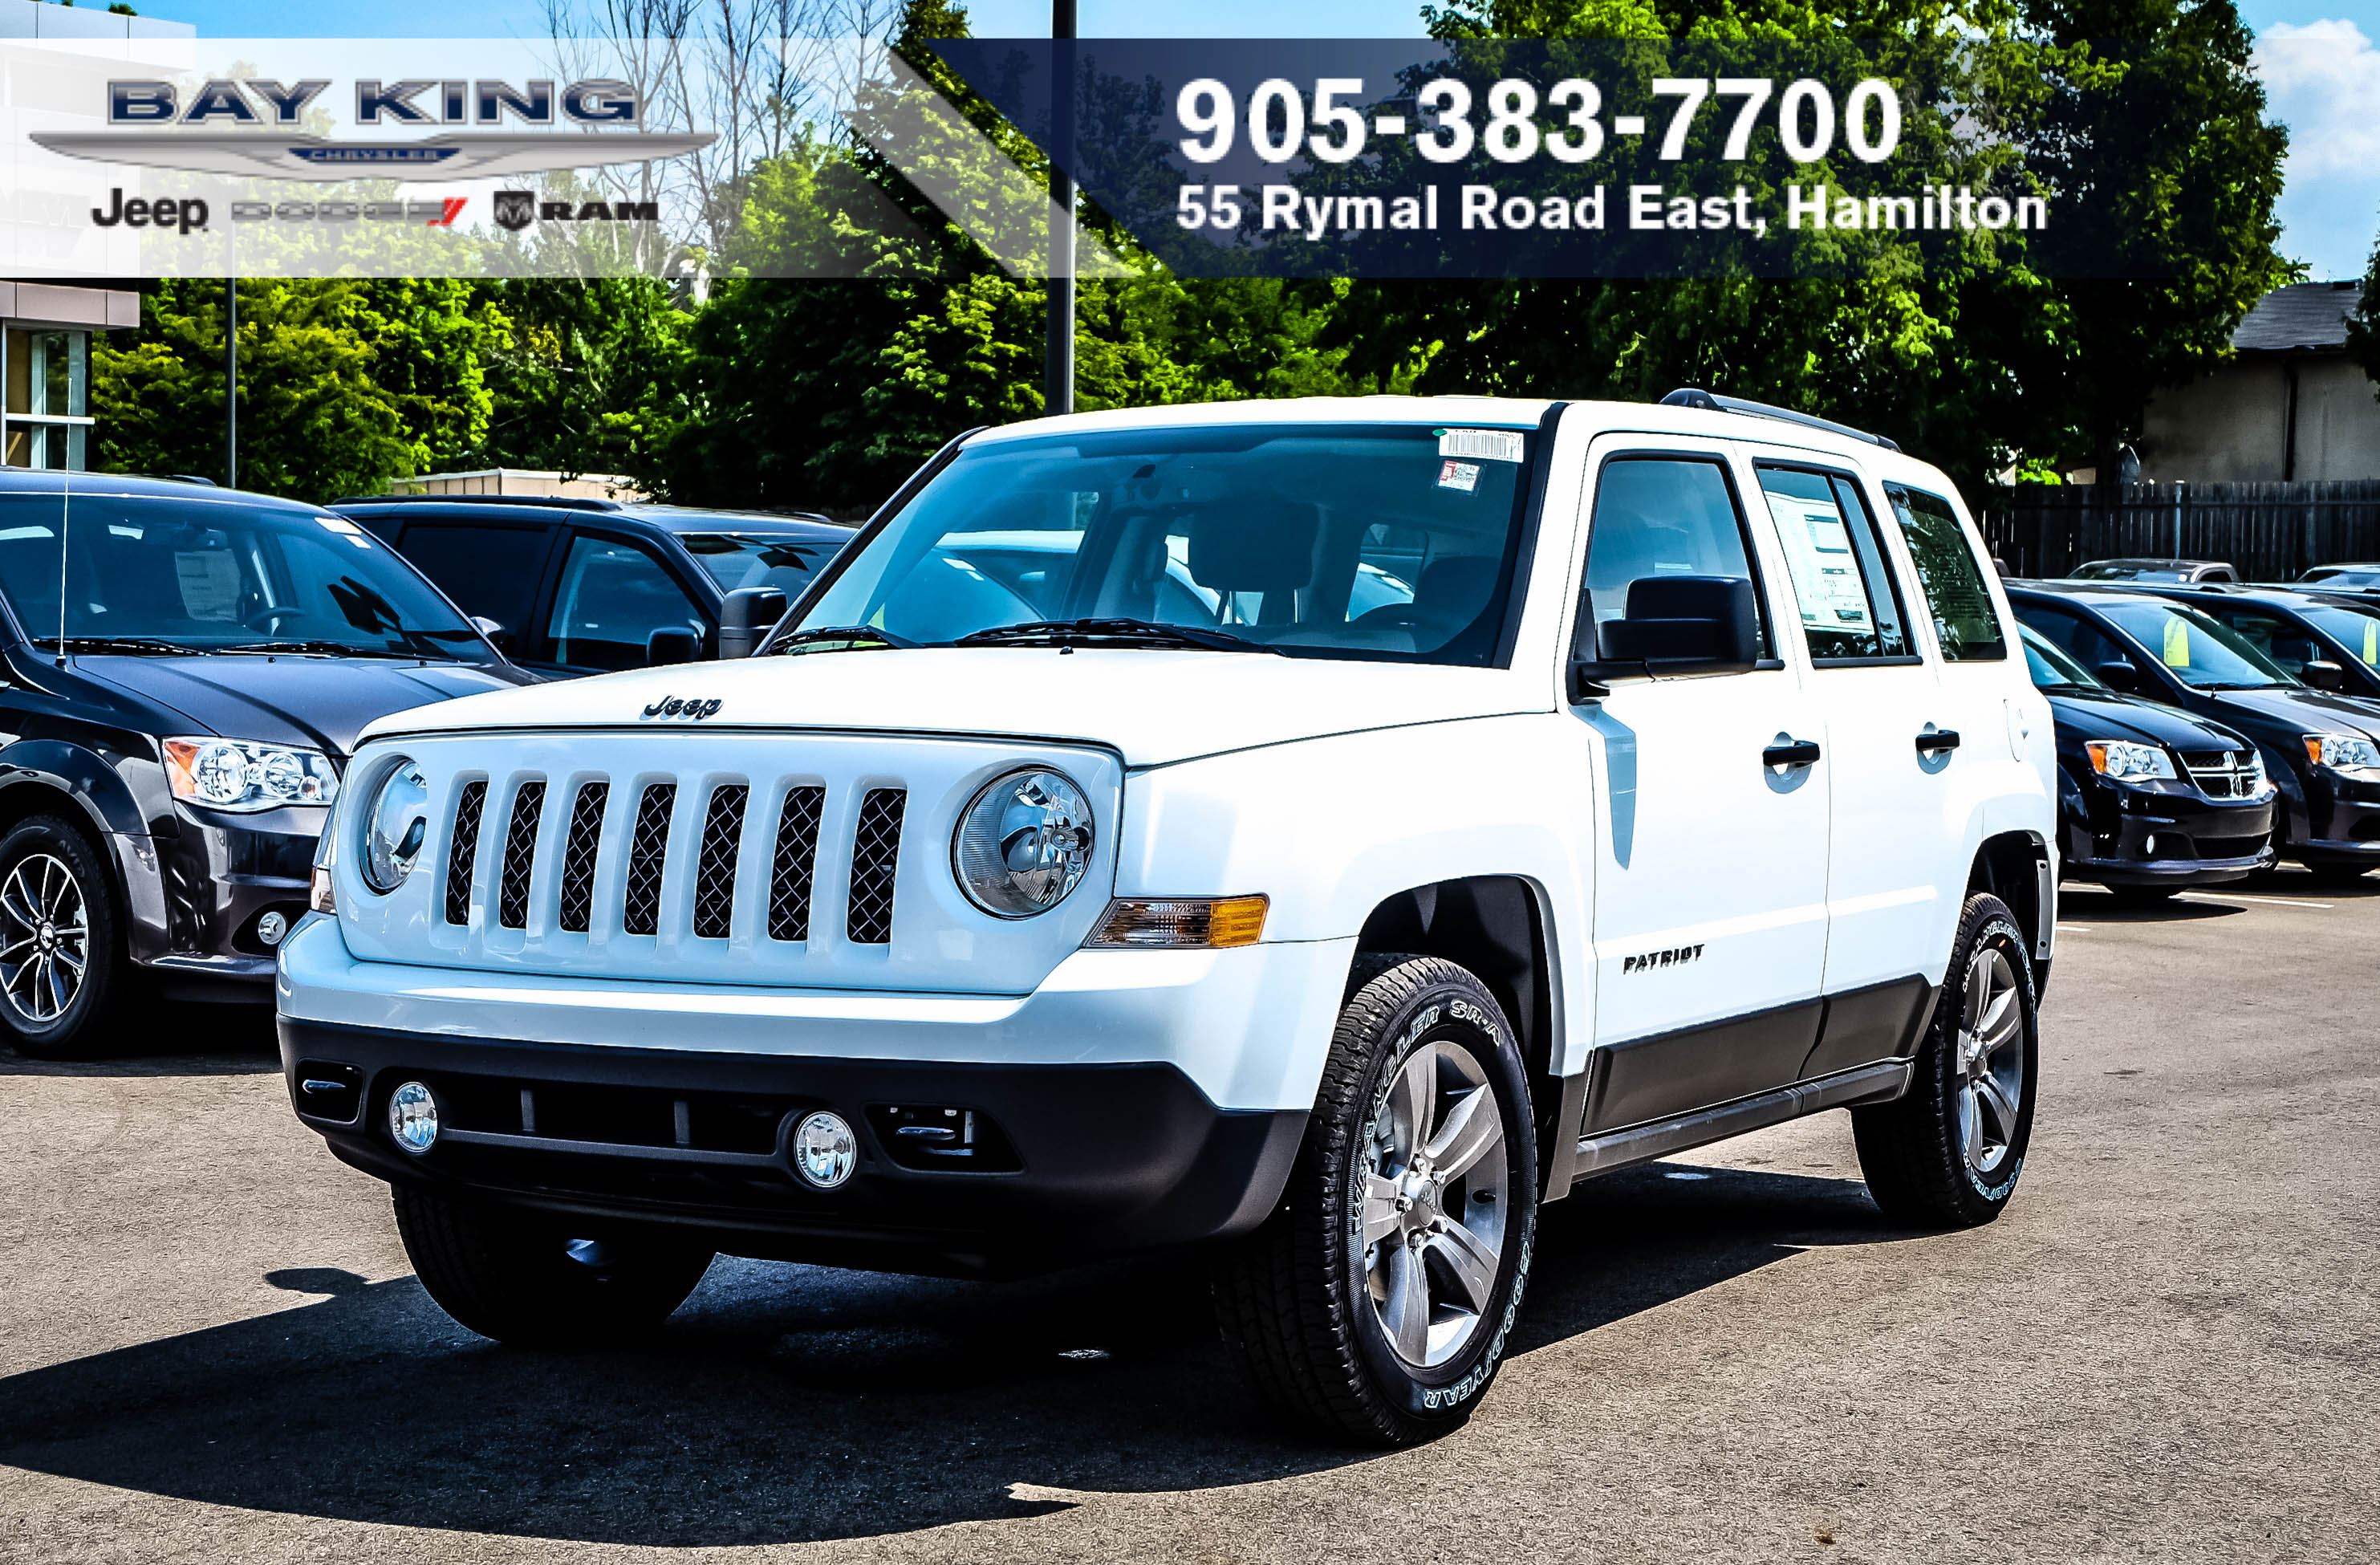 2016 Jeep Patriot Sport Altitude $22,998 +Tax & Lic